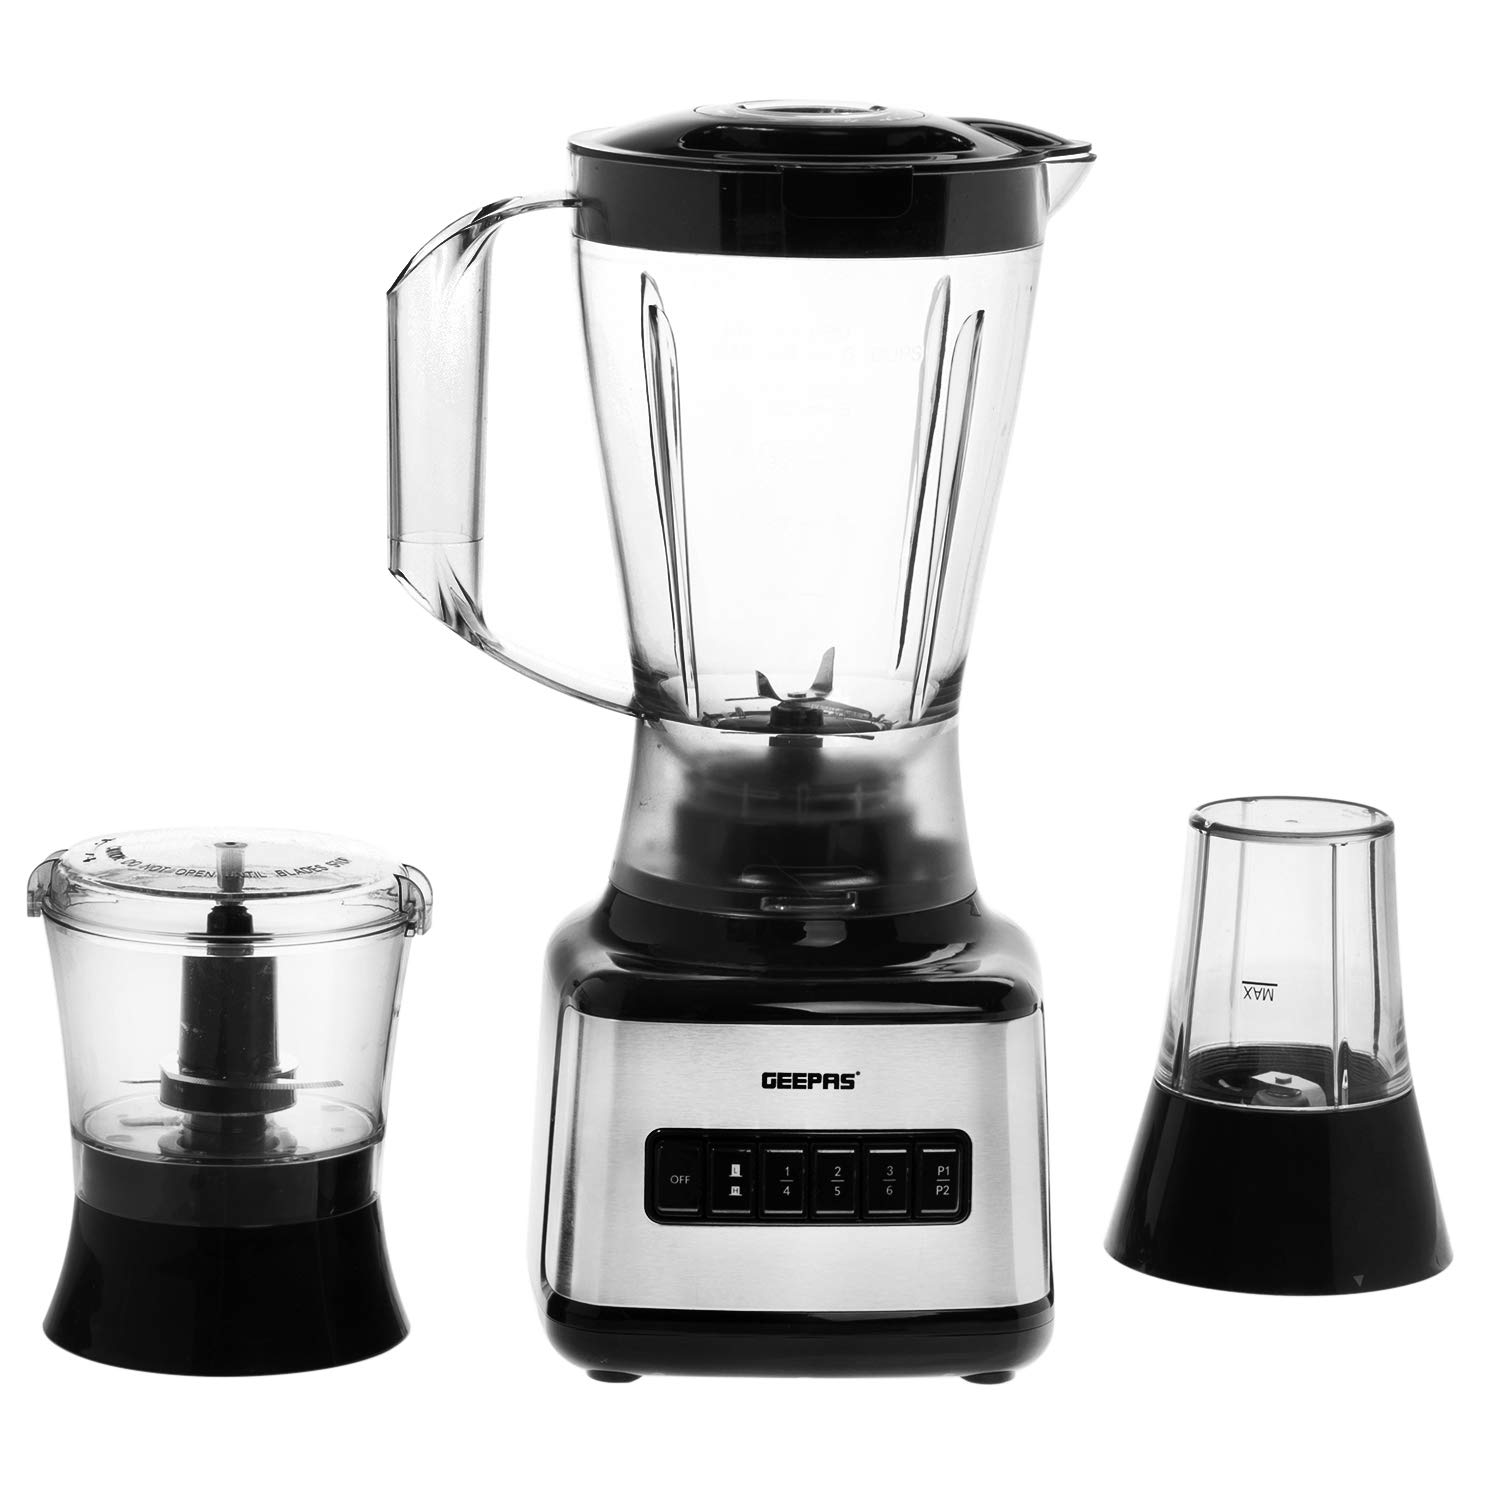 Geepas 500W 3 in 1 Stainless Steel Blender with 1.5L Plastic jar & Stainless Steel Blades Plastic jug with 8 Speed & Anti-Slip feet Design – 2 Year Warranty